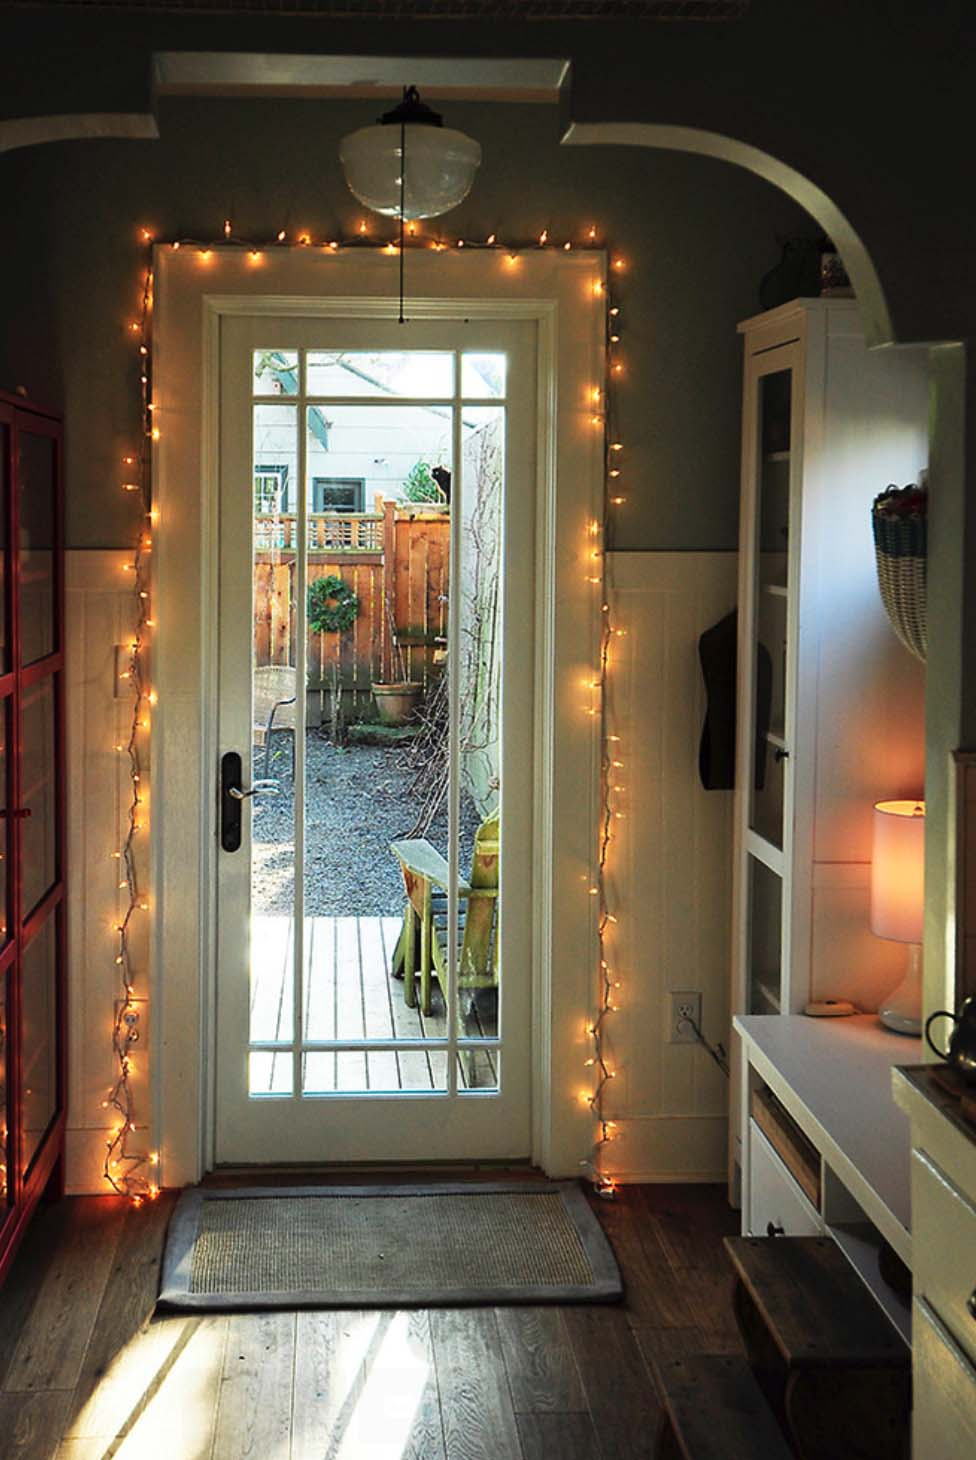 https://homebnc.com/homeimg/2016/08/25-string-lights-decorating-ideas-homebnc.jpg